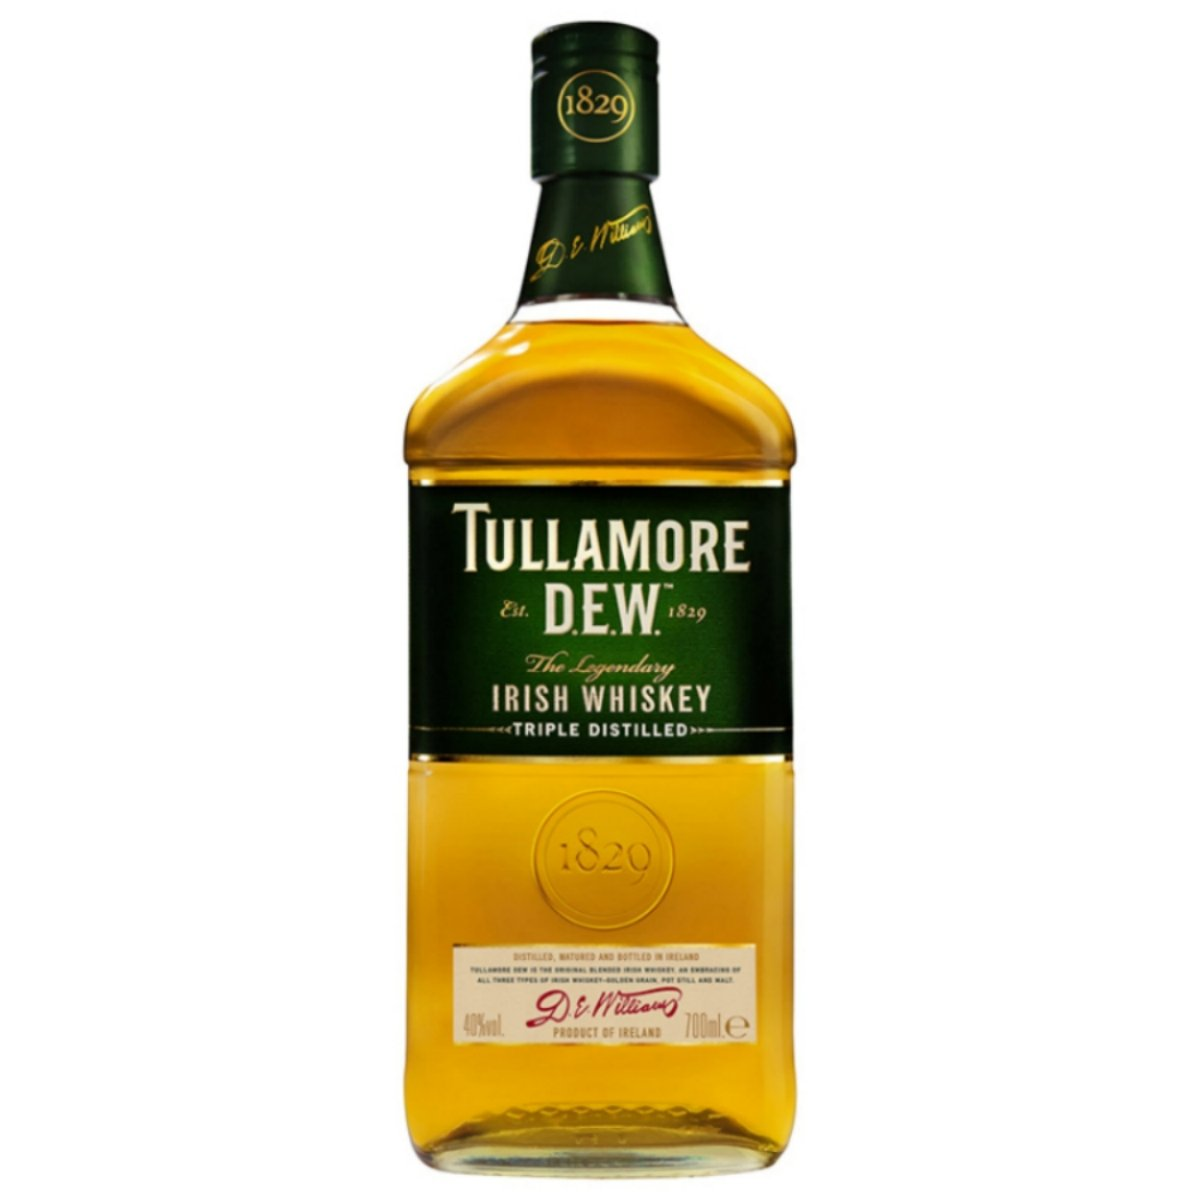 Tullamore-Dew-Irish-Whiskey